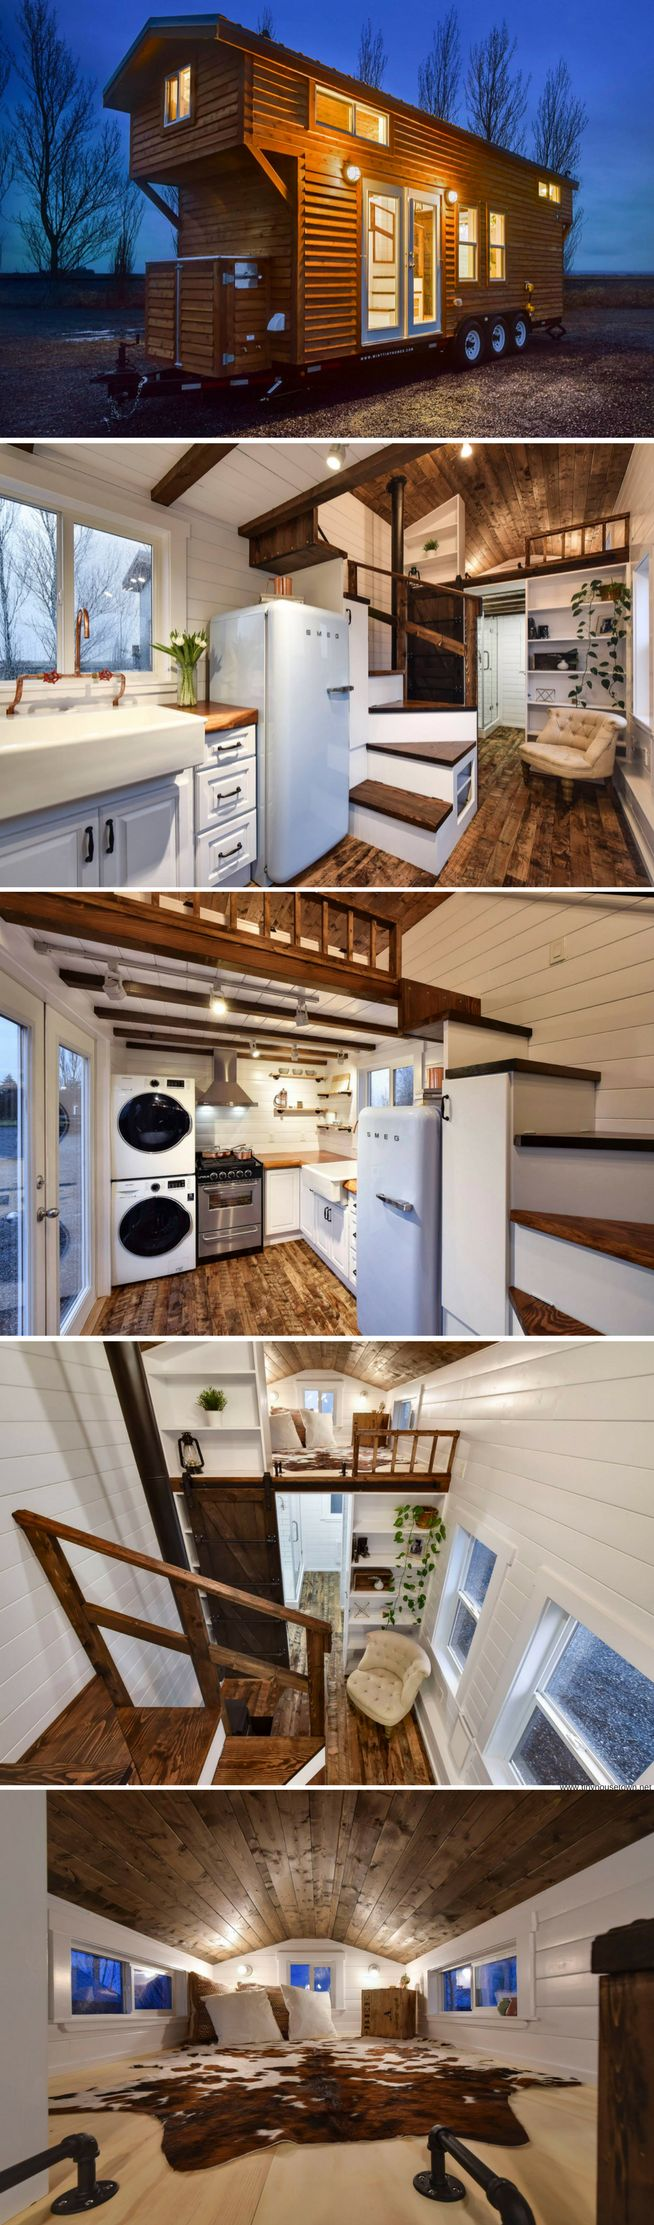 Rustic 24' tiny house